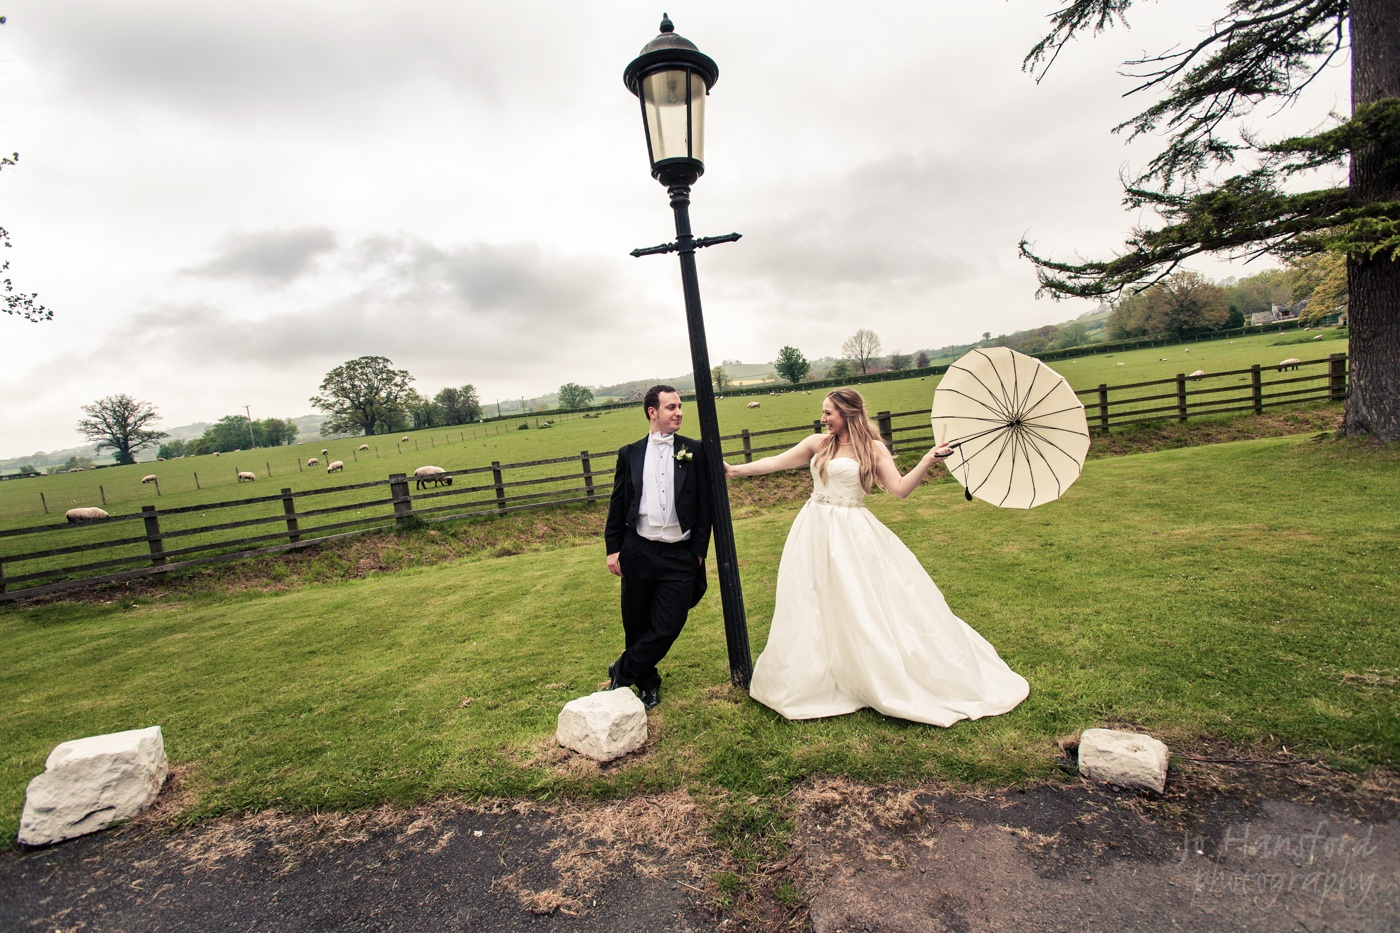 403_johansfordphotography_wedding_020